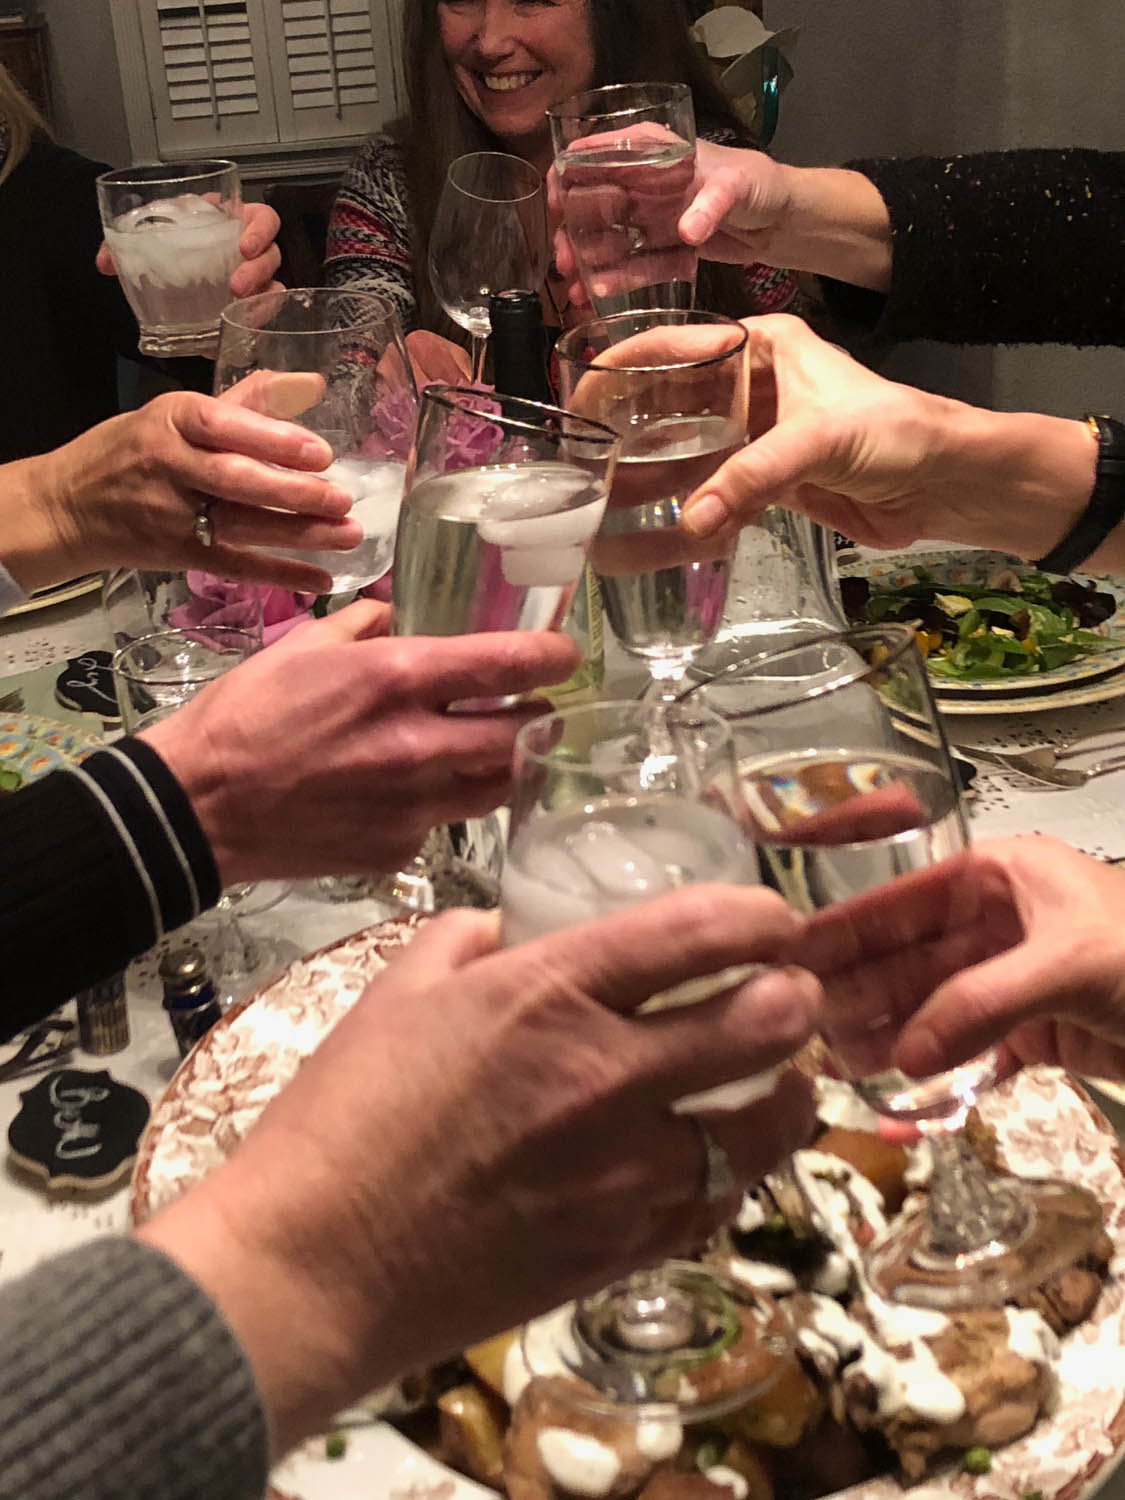 Ladies' hands toasting goblets over a shared dinner.